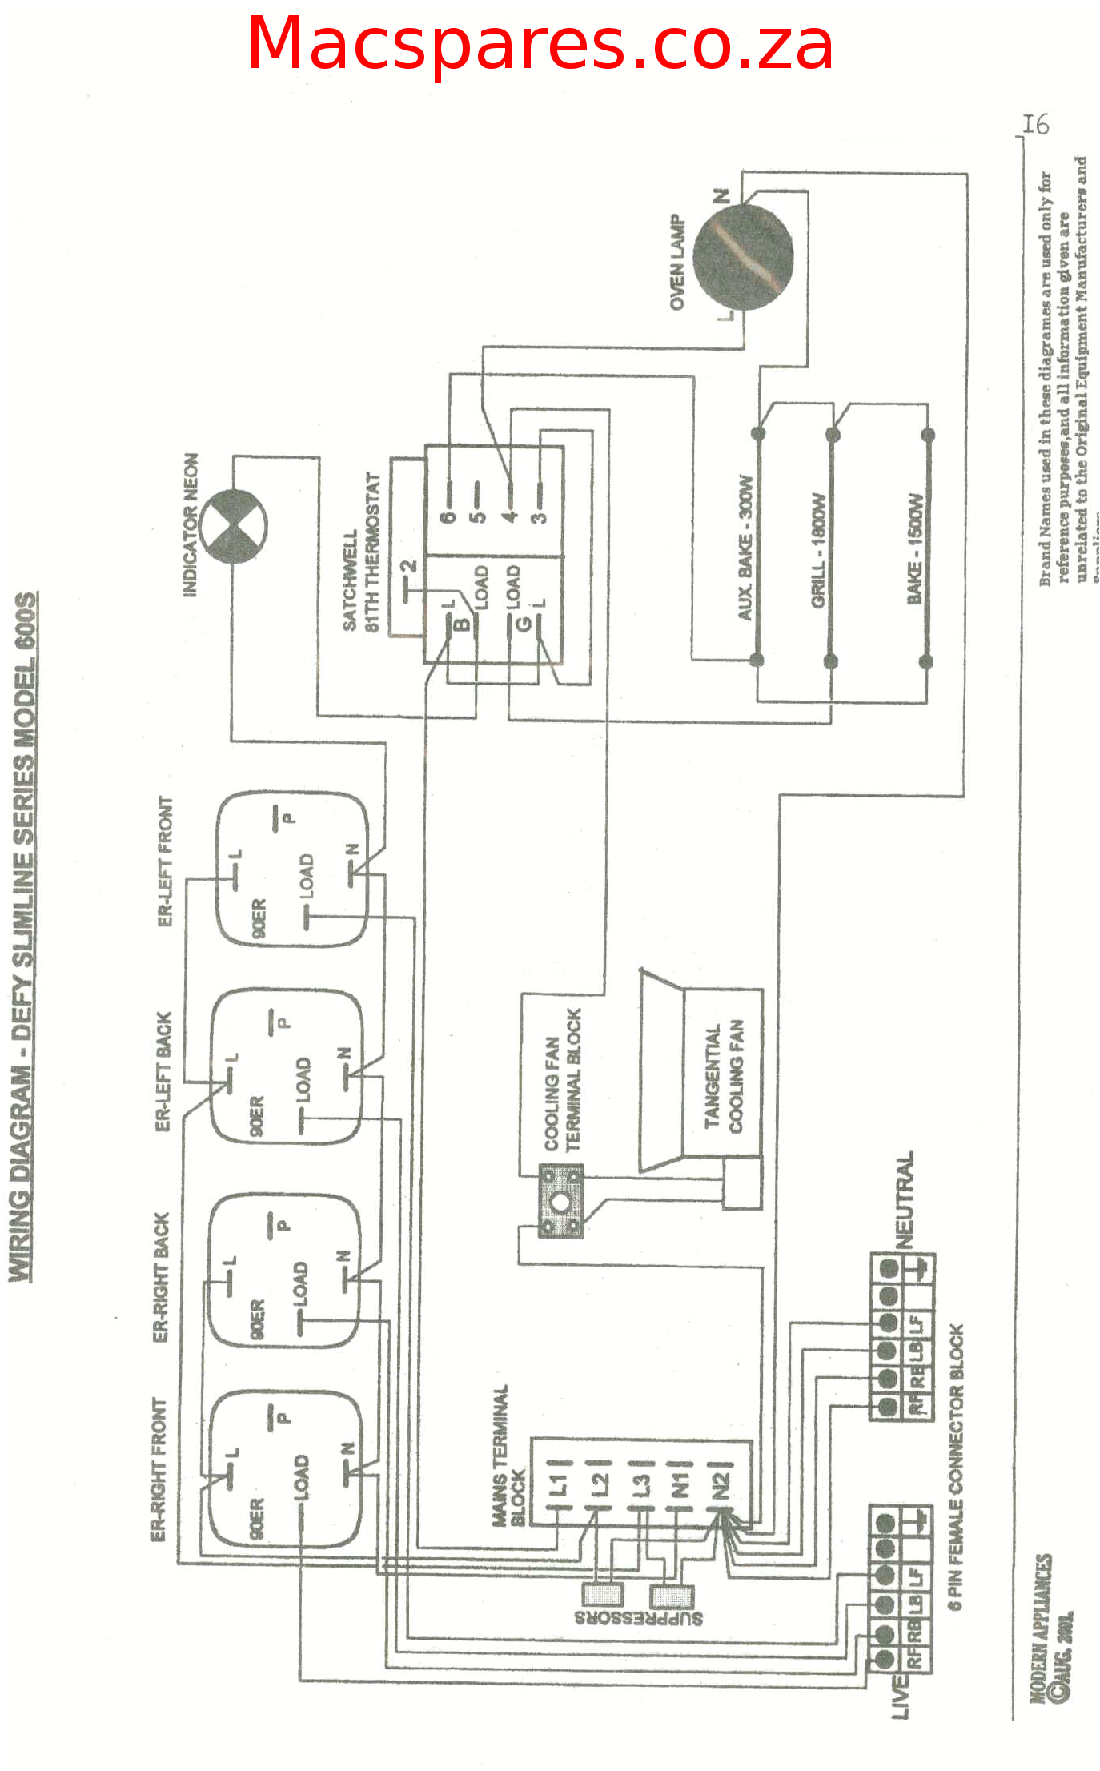 wiring diagrams stoves macspares wholesale spare partsdefy gemini wiring diagram 3